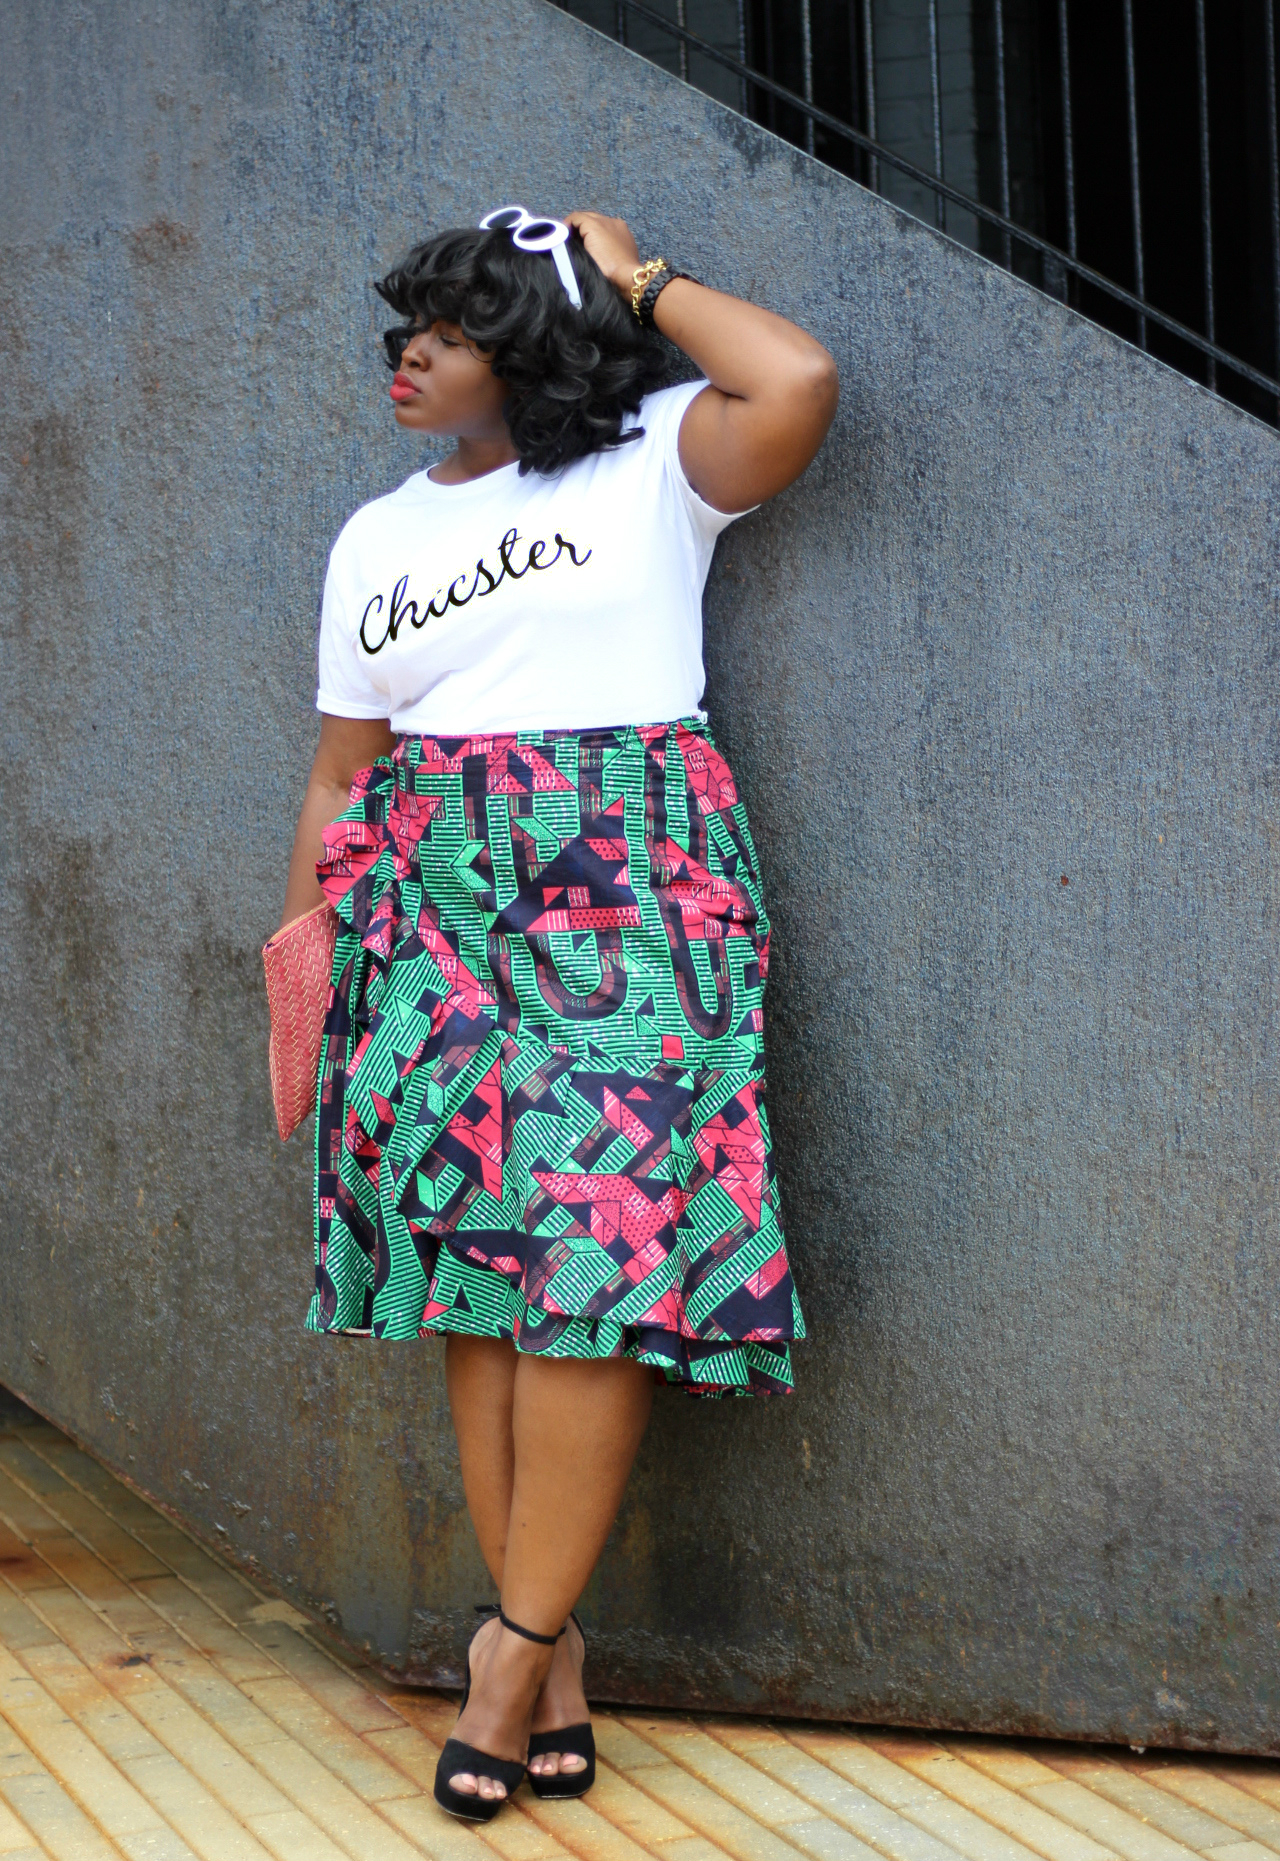 ruffle skirt chicster tee summer outfit III